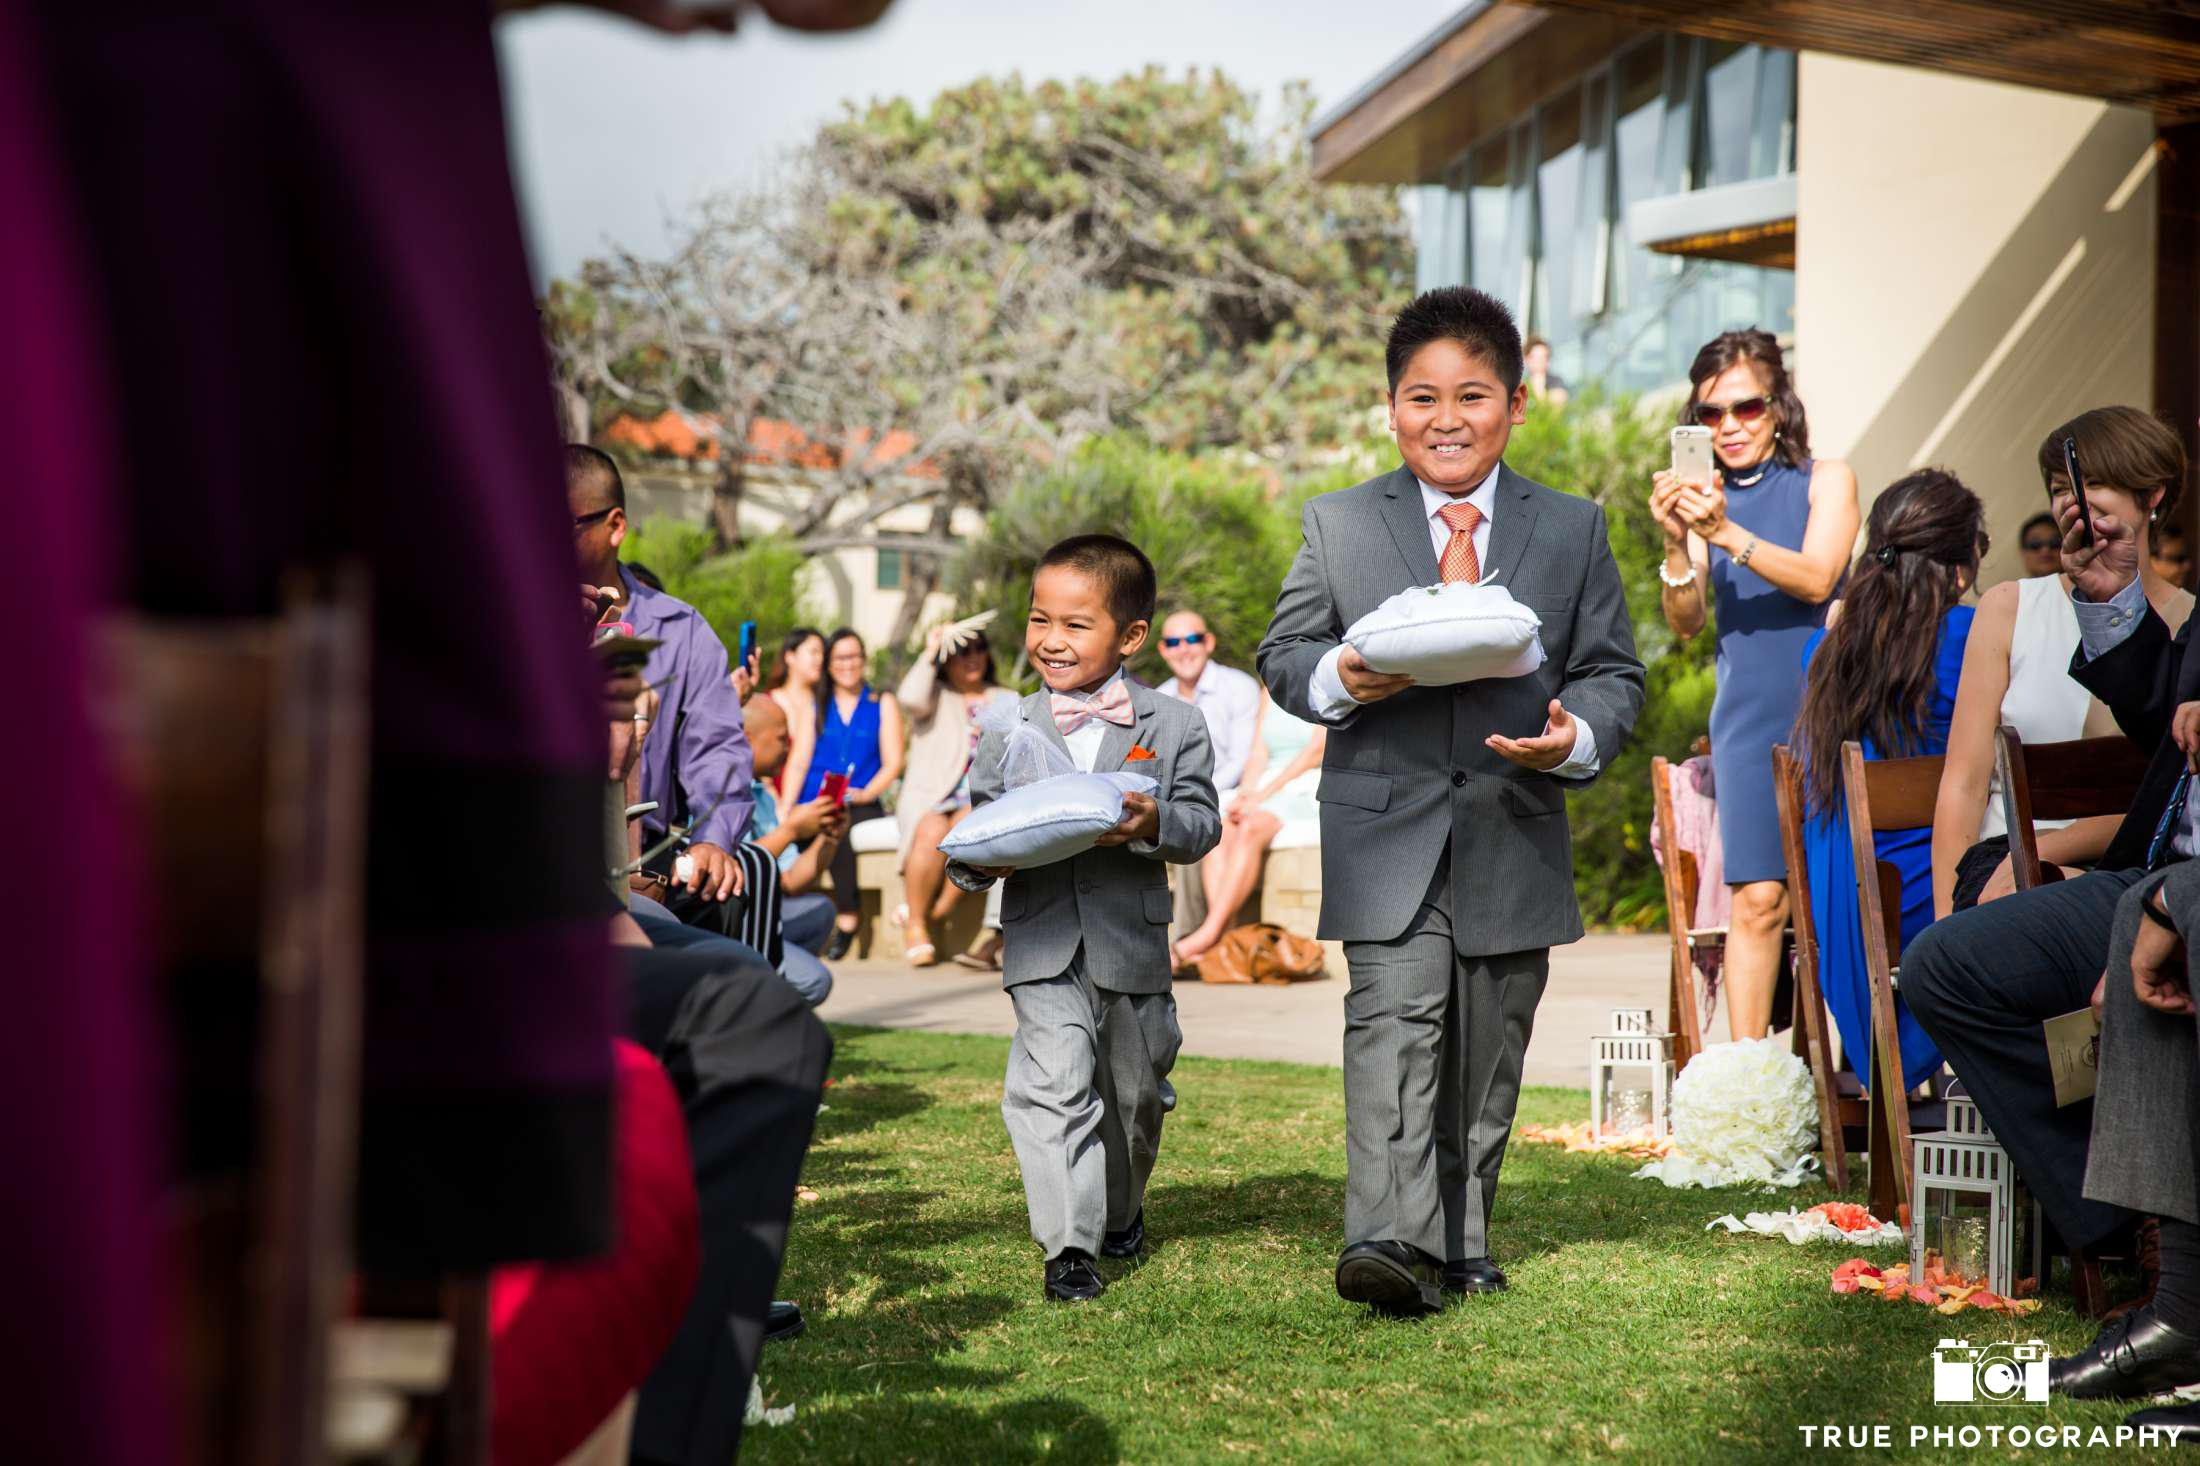 two ring bearers in gray suits